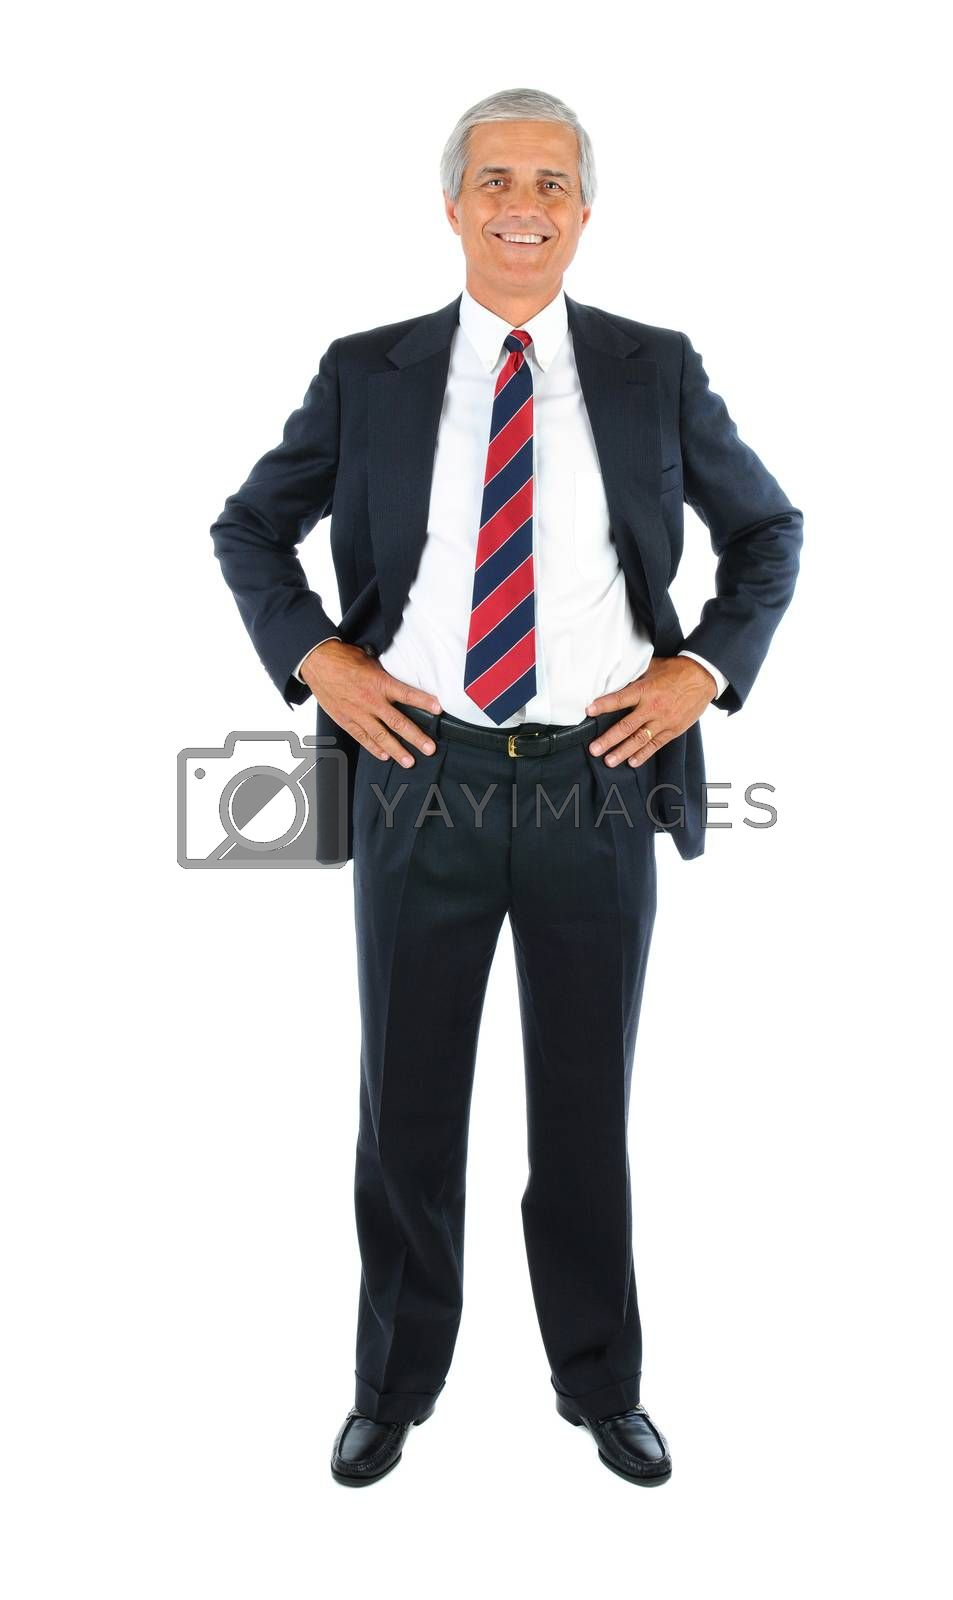 Smiling middle aged businessman in a suit and tie with his hands on hips. Full length over a white background.